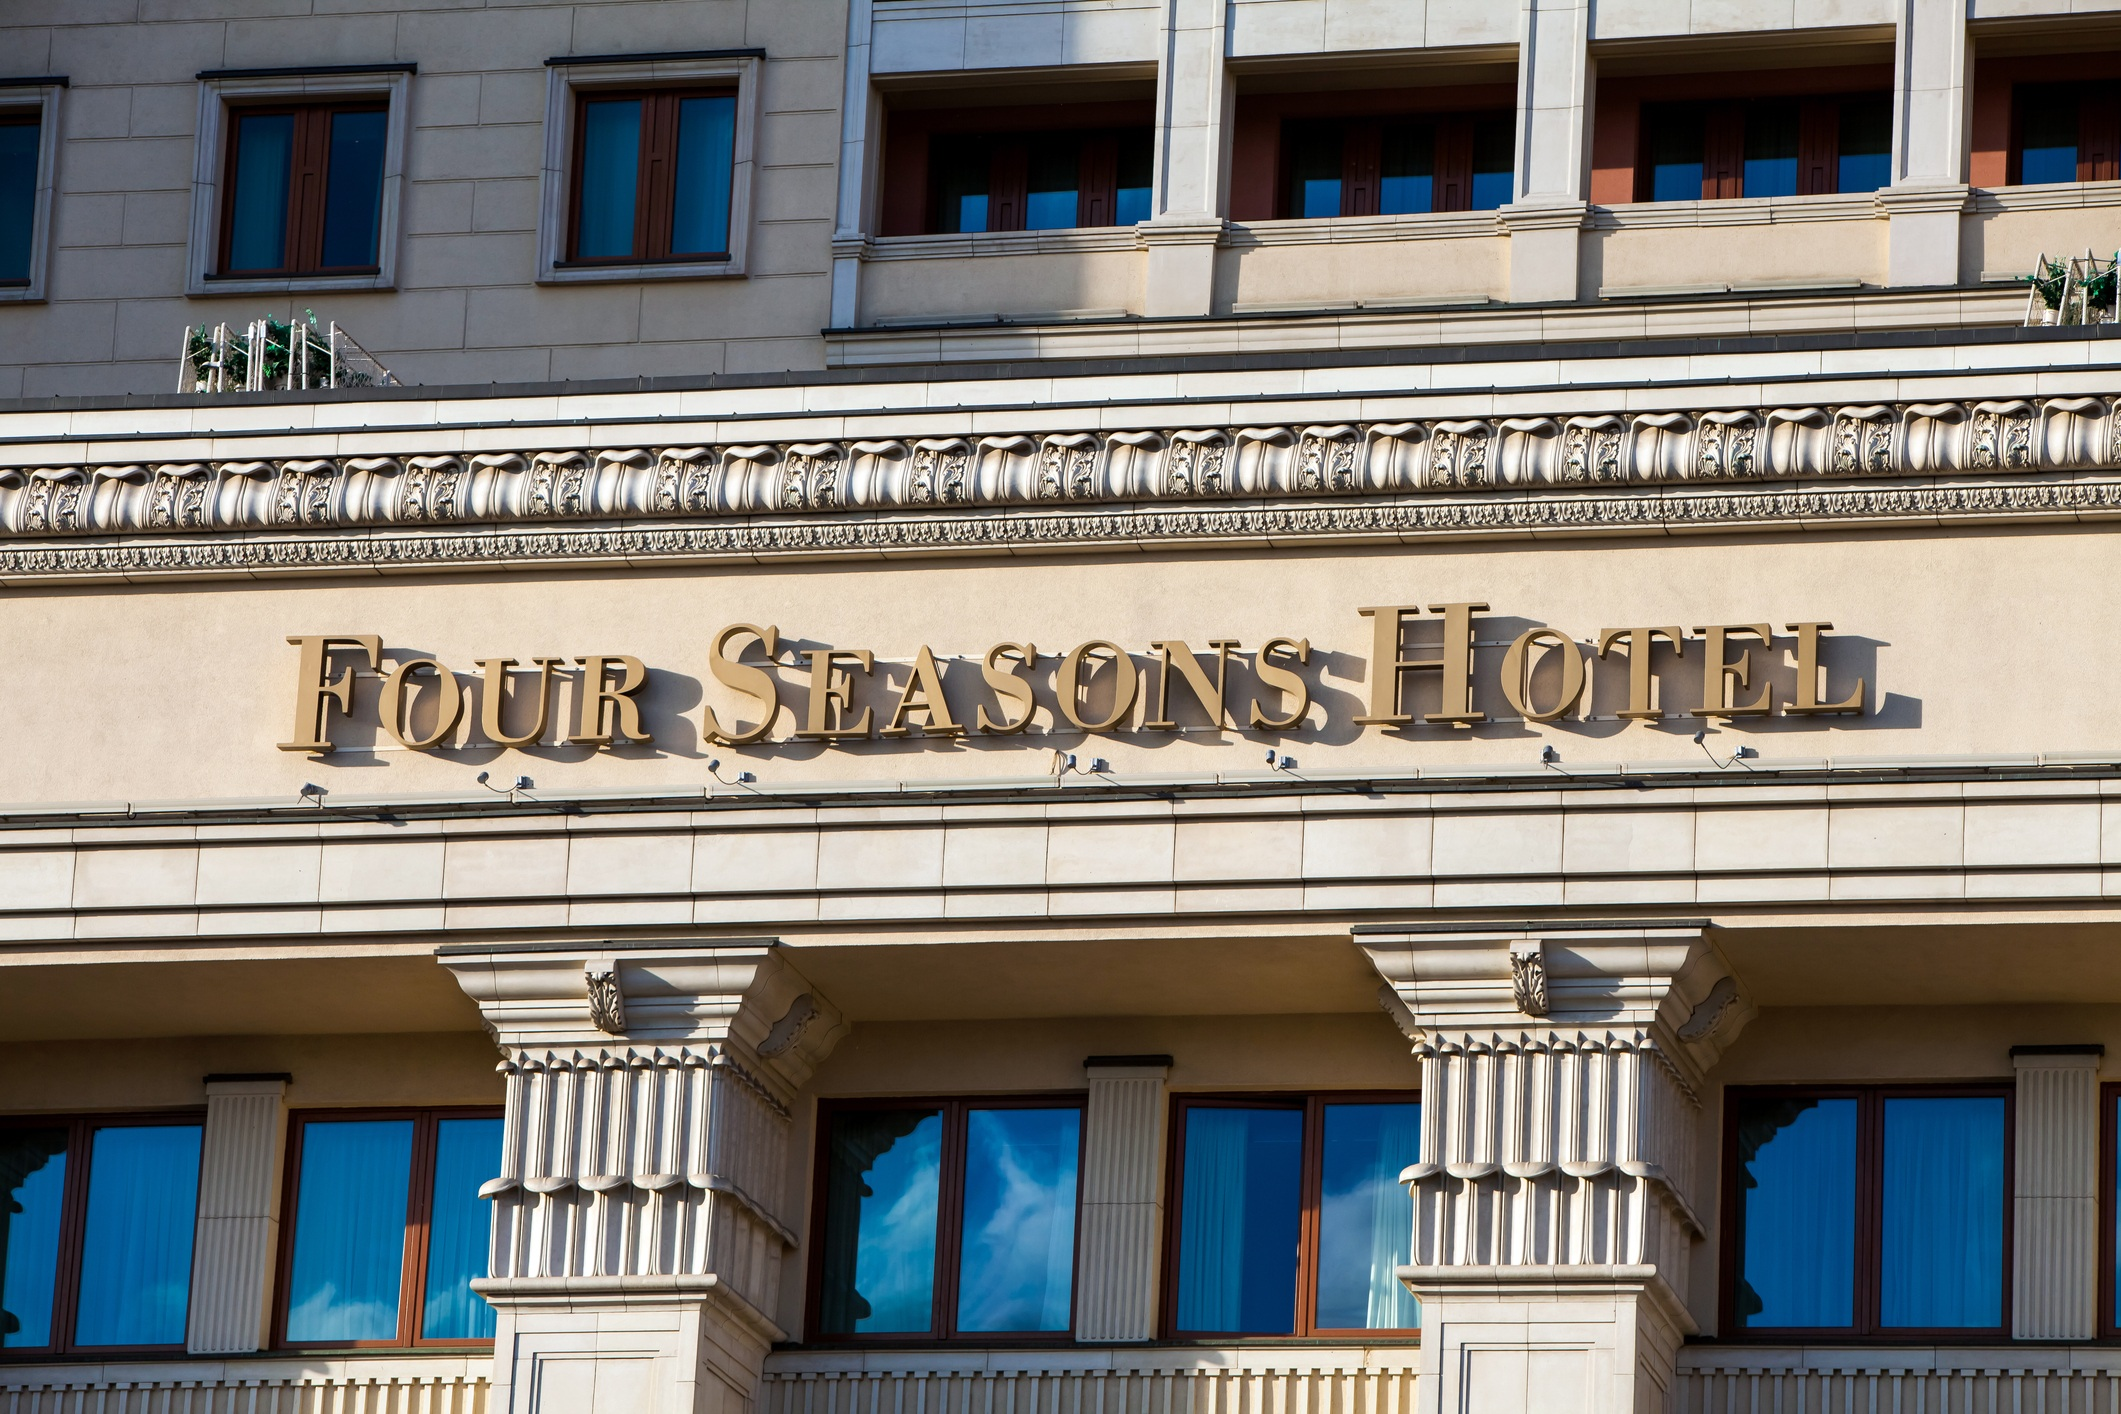 Four Seasons Hotel sign in Moscow, Russia